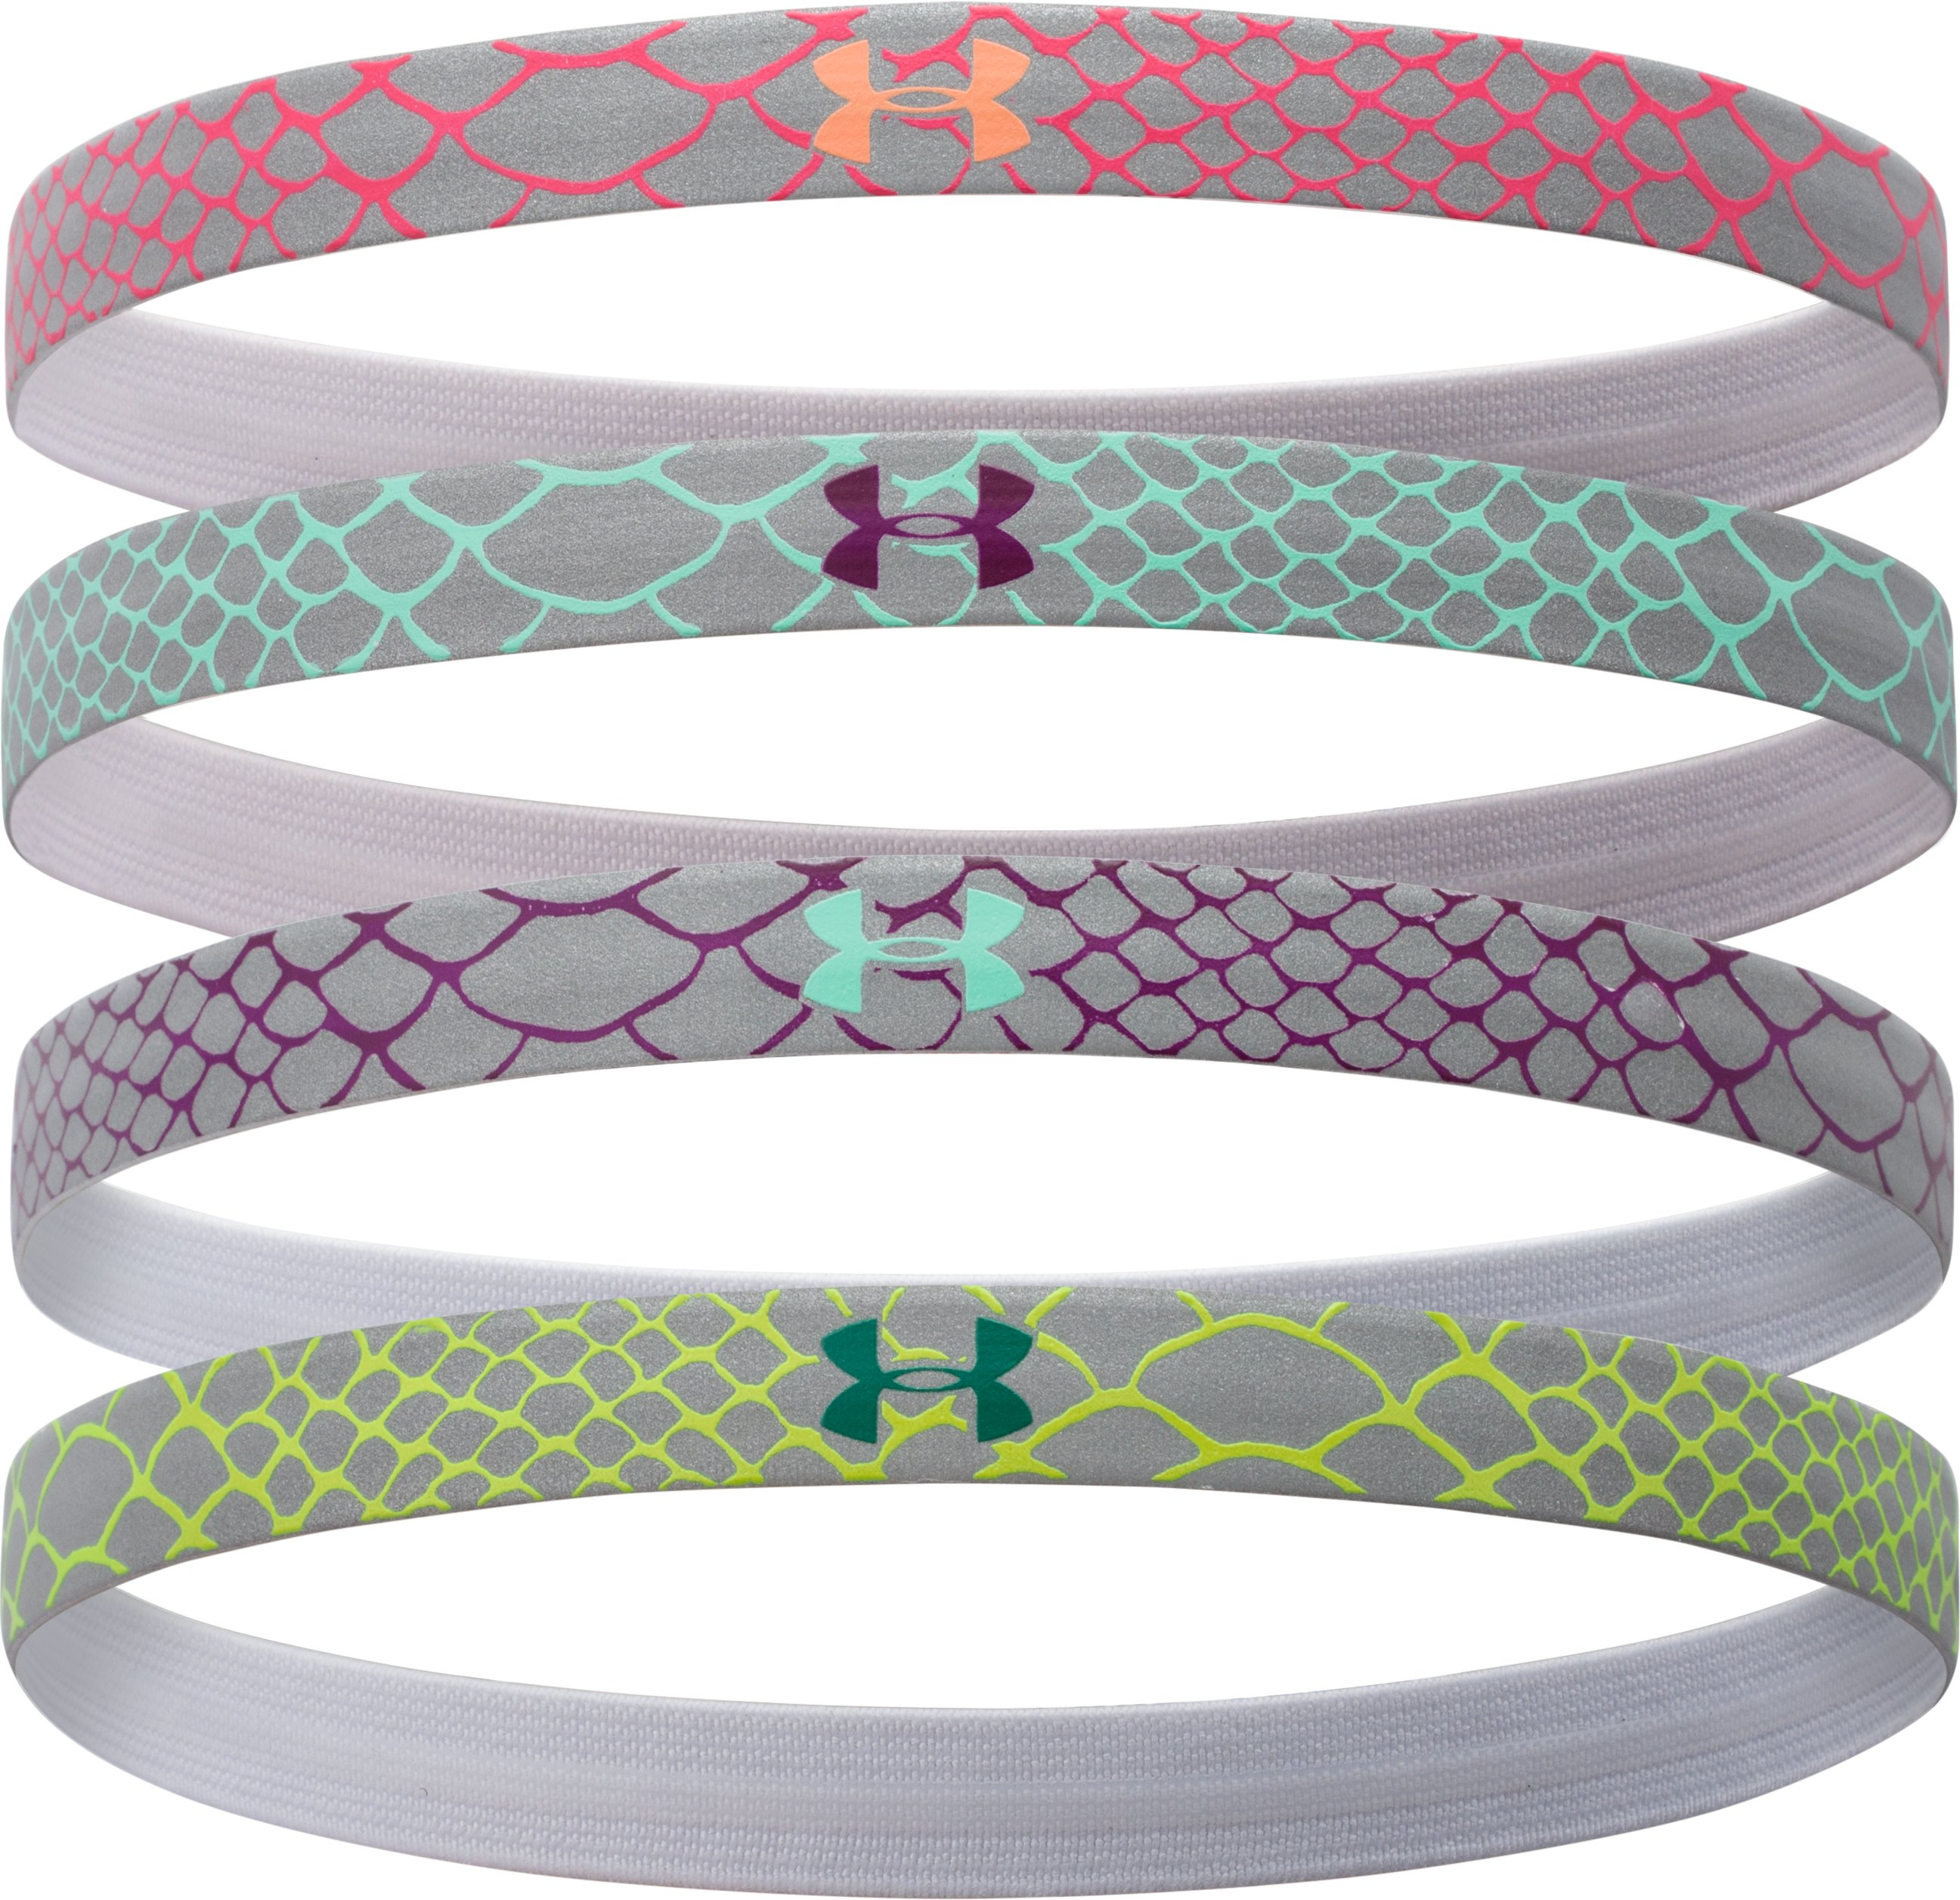 Women's UA Reflective Mini Headband - 4pk, Aubergine